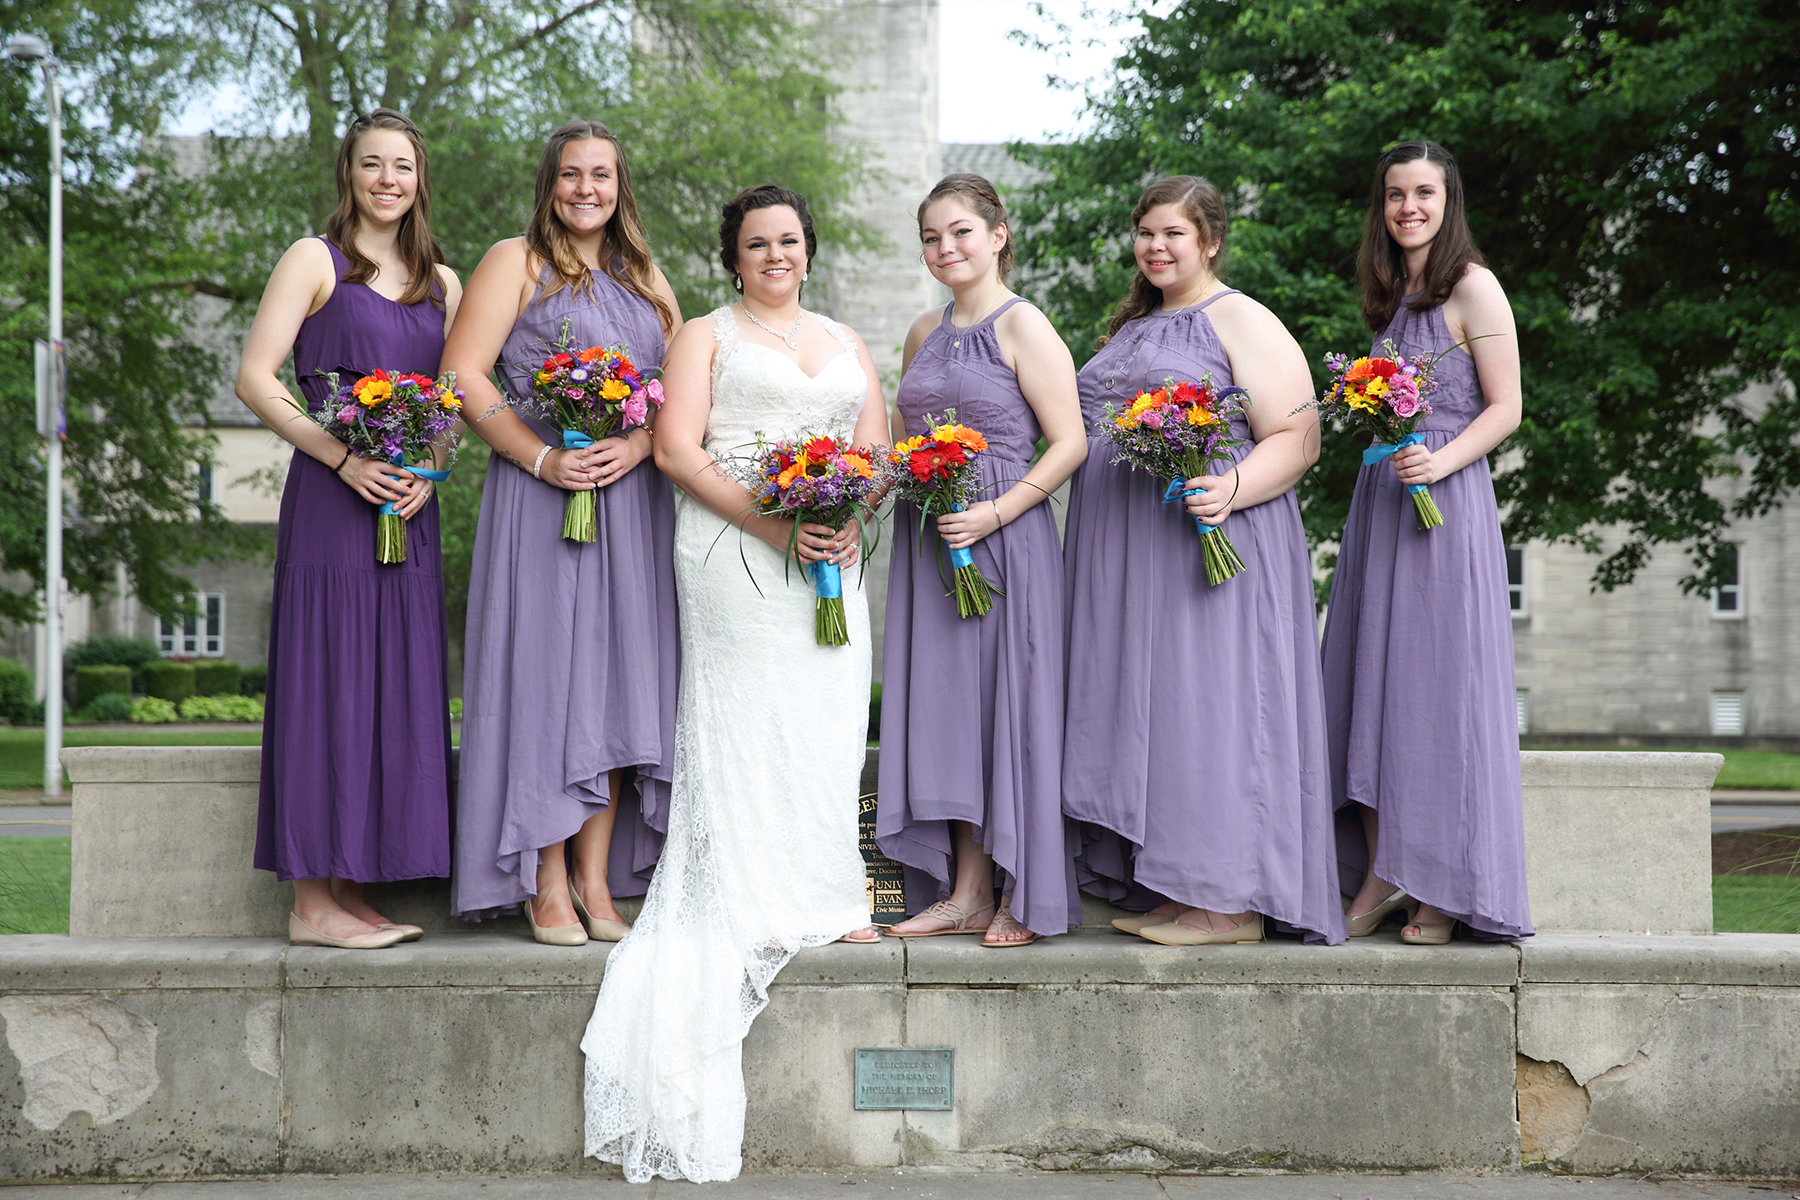 Bridesmaids equinox photography evansville indiana wedding bride with bridesmaids in purple dresses ombrellifo Choice Image